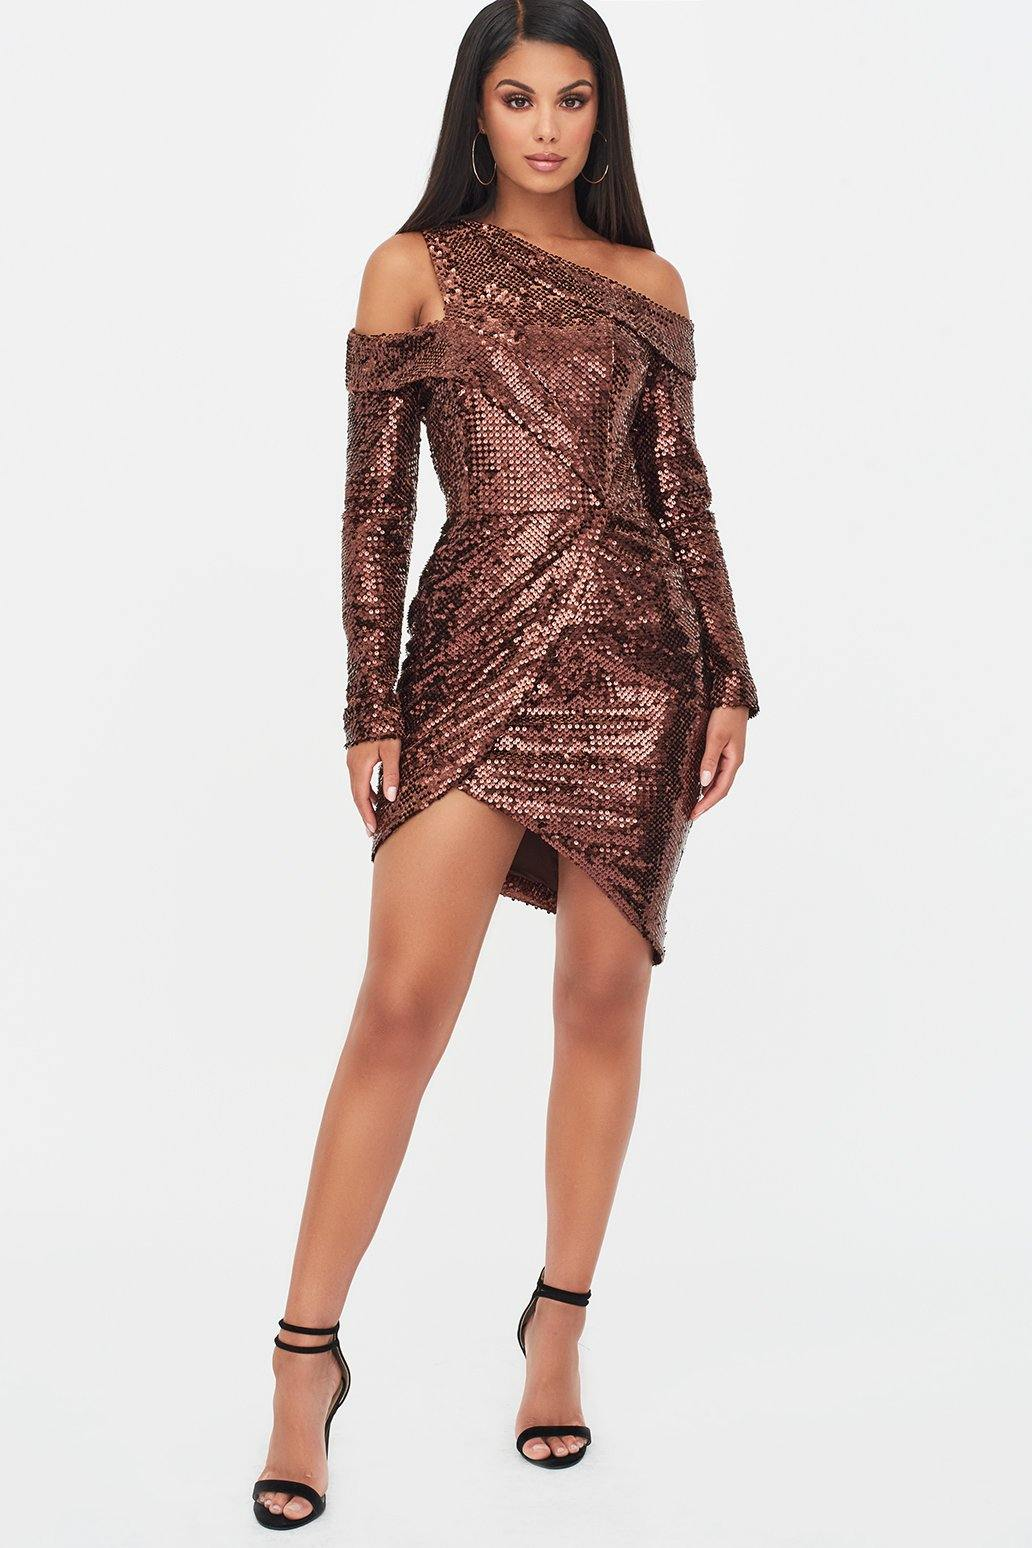 Lavish Alice Velvet Sequin Cut Out Wrap Dress in Chocolate